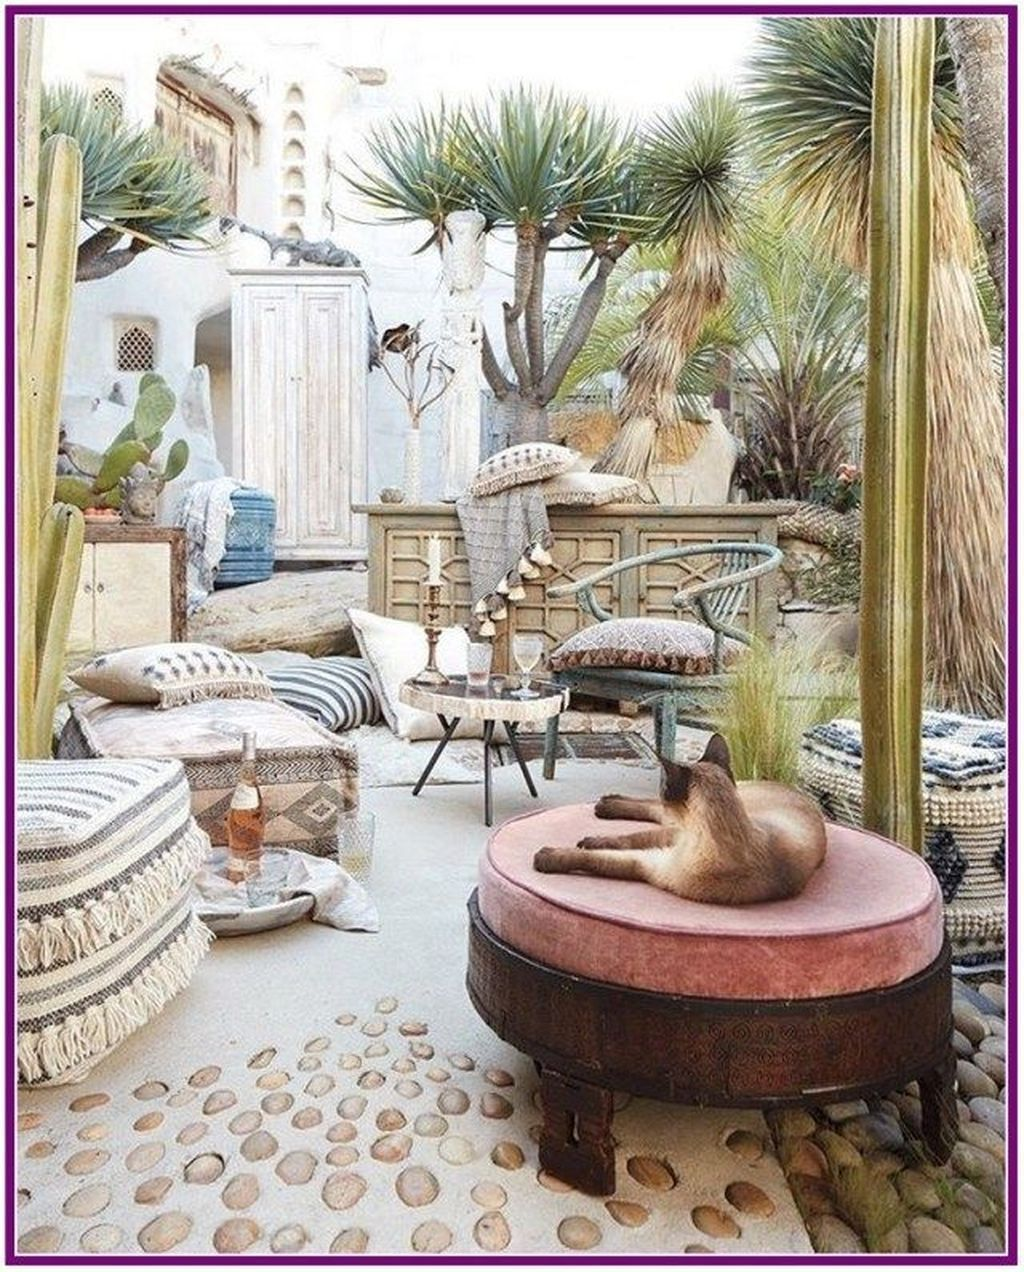 17 Lively Shabby Chic Garden Designs That Will Relax And: 38 Creative Outdoor Makeover Ideas For Living Room To